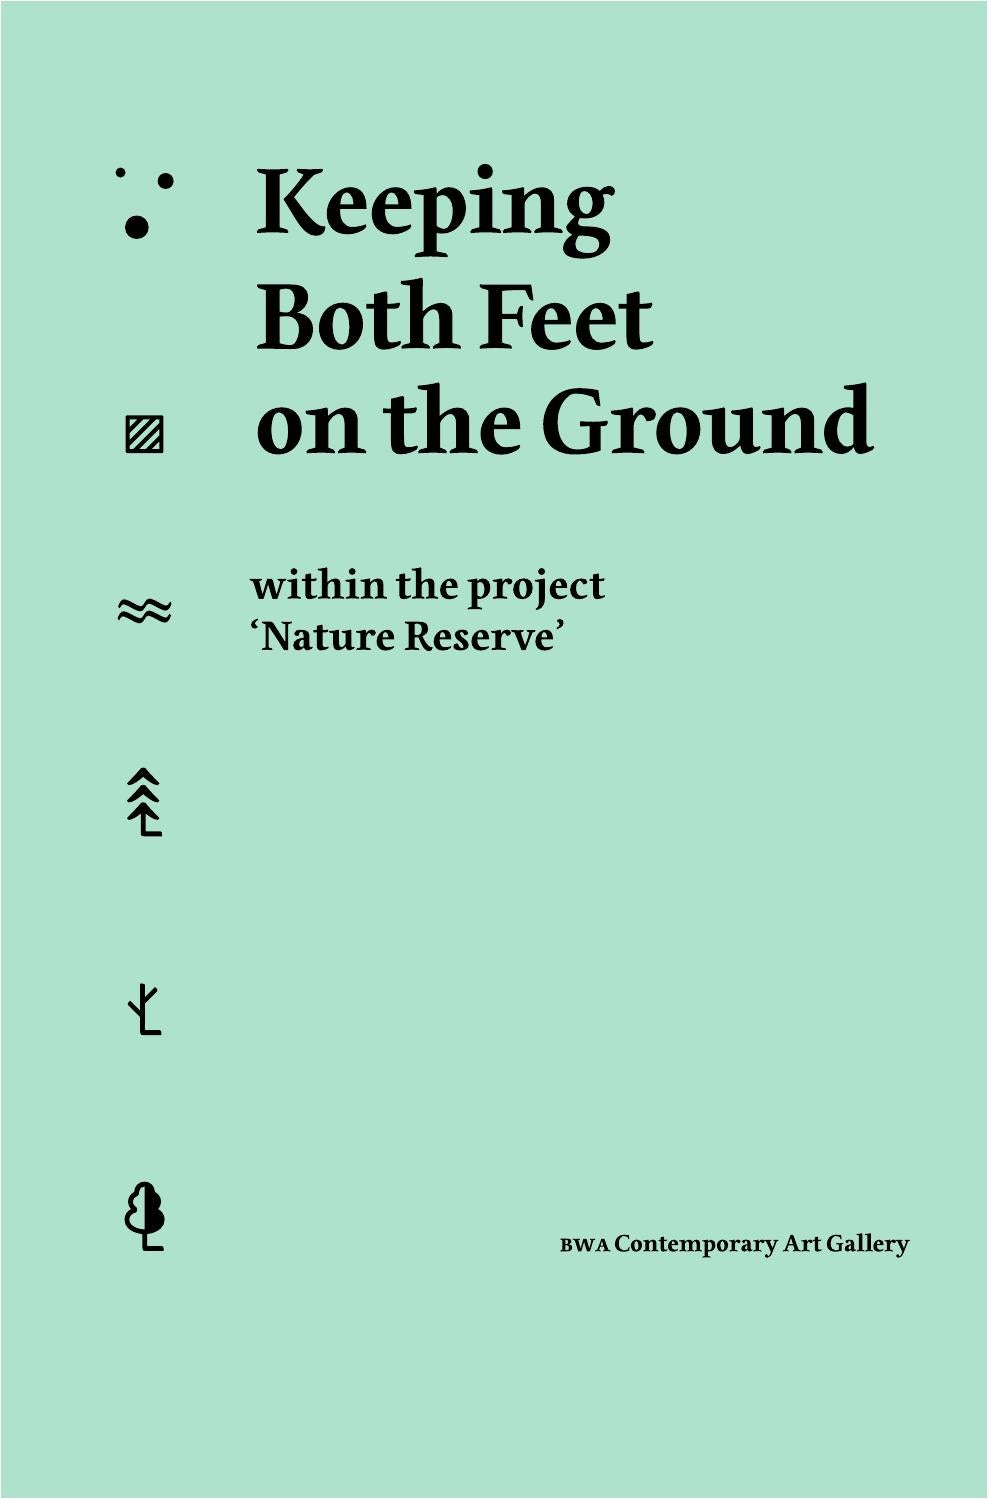 Keep Both Feet on the Ground' — publication by Galera Sztuki